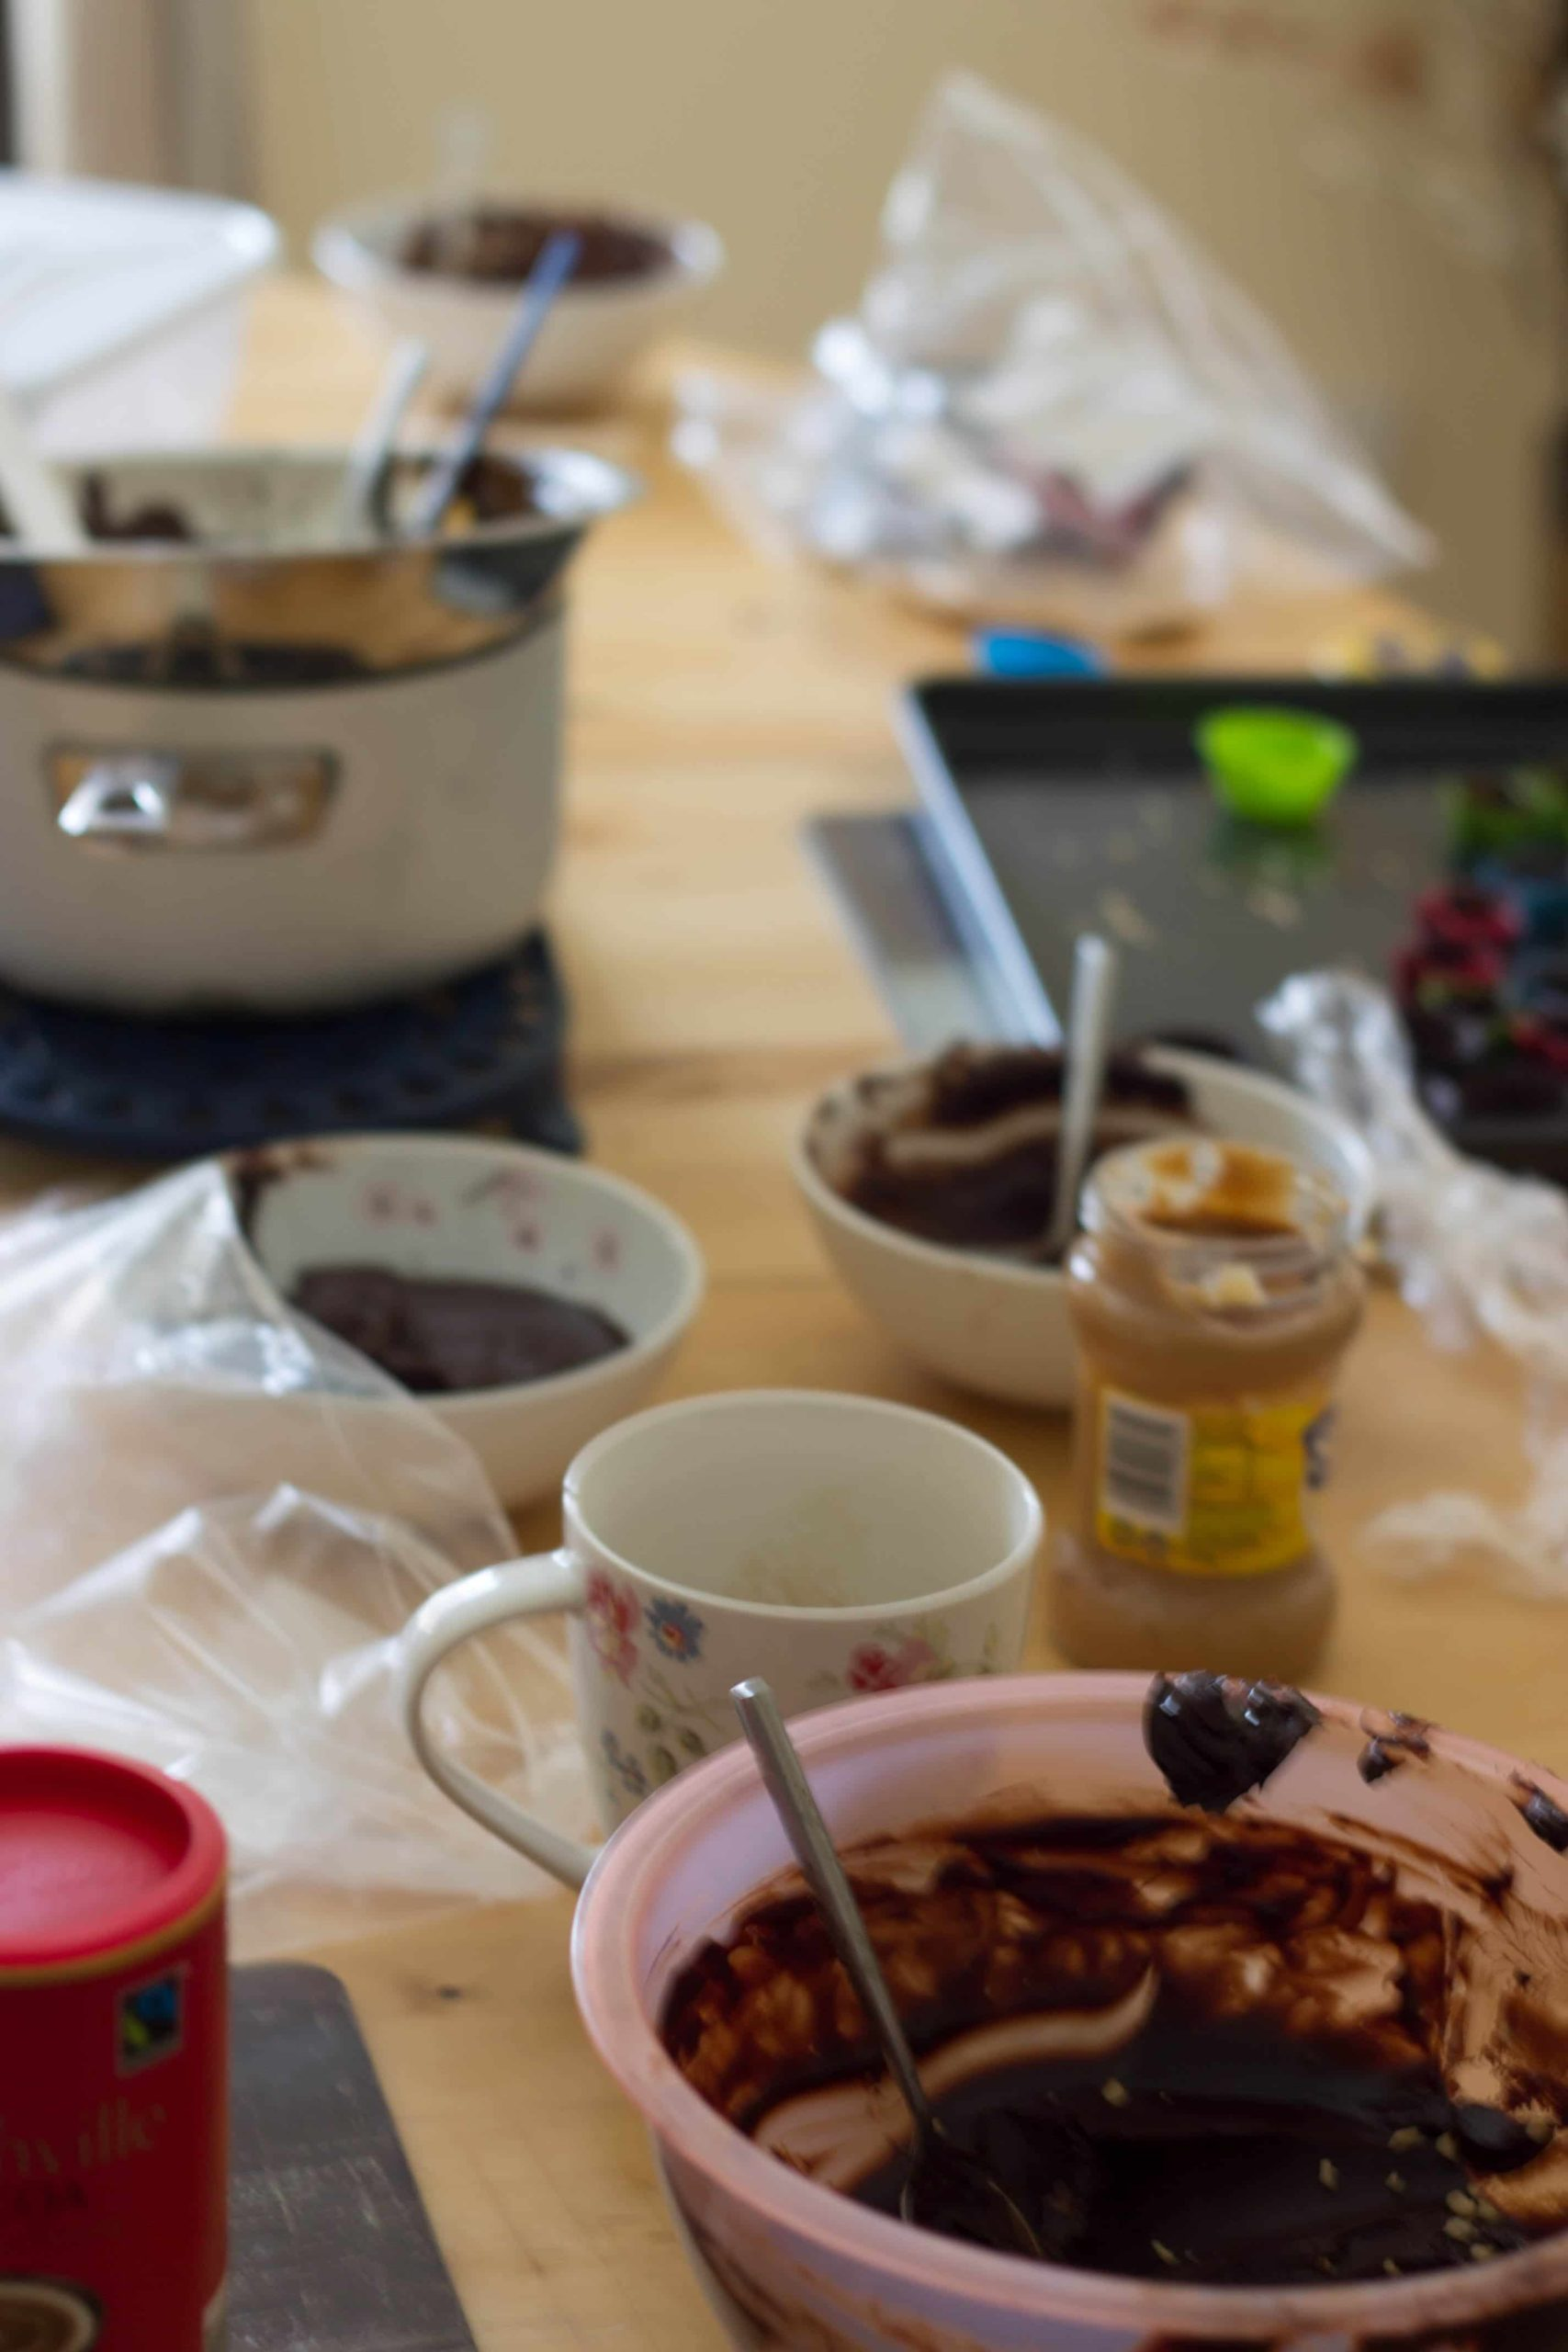 mess in the kitchen, bowls covered in chocolate, unopened jars and dirty pans.